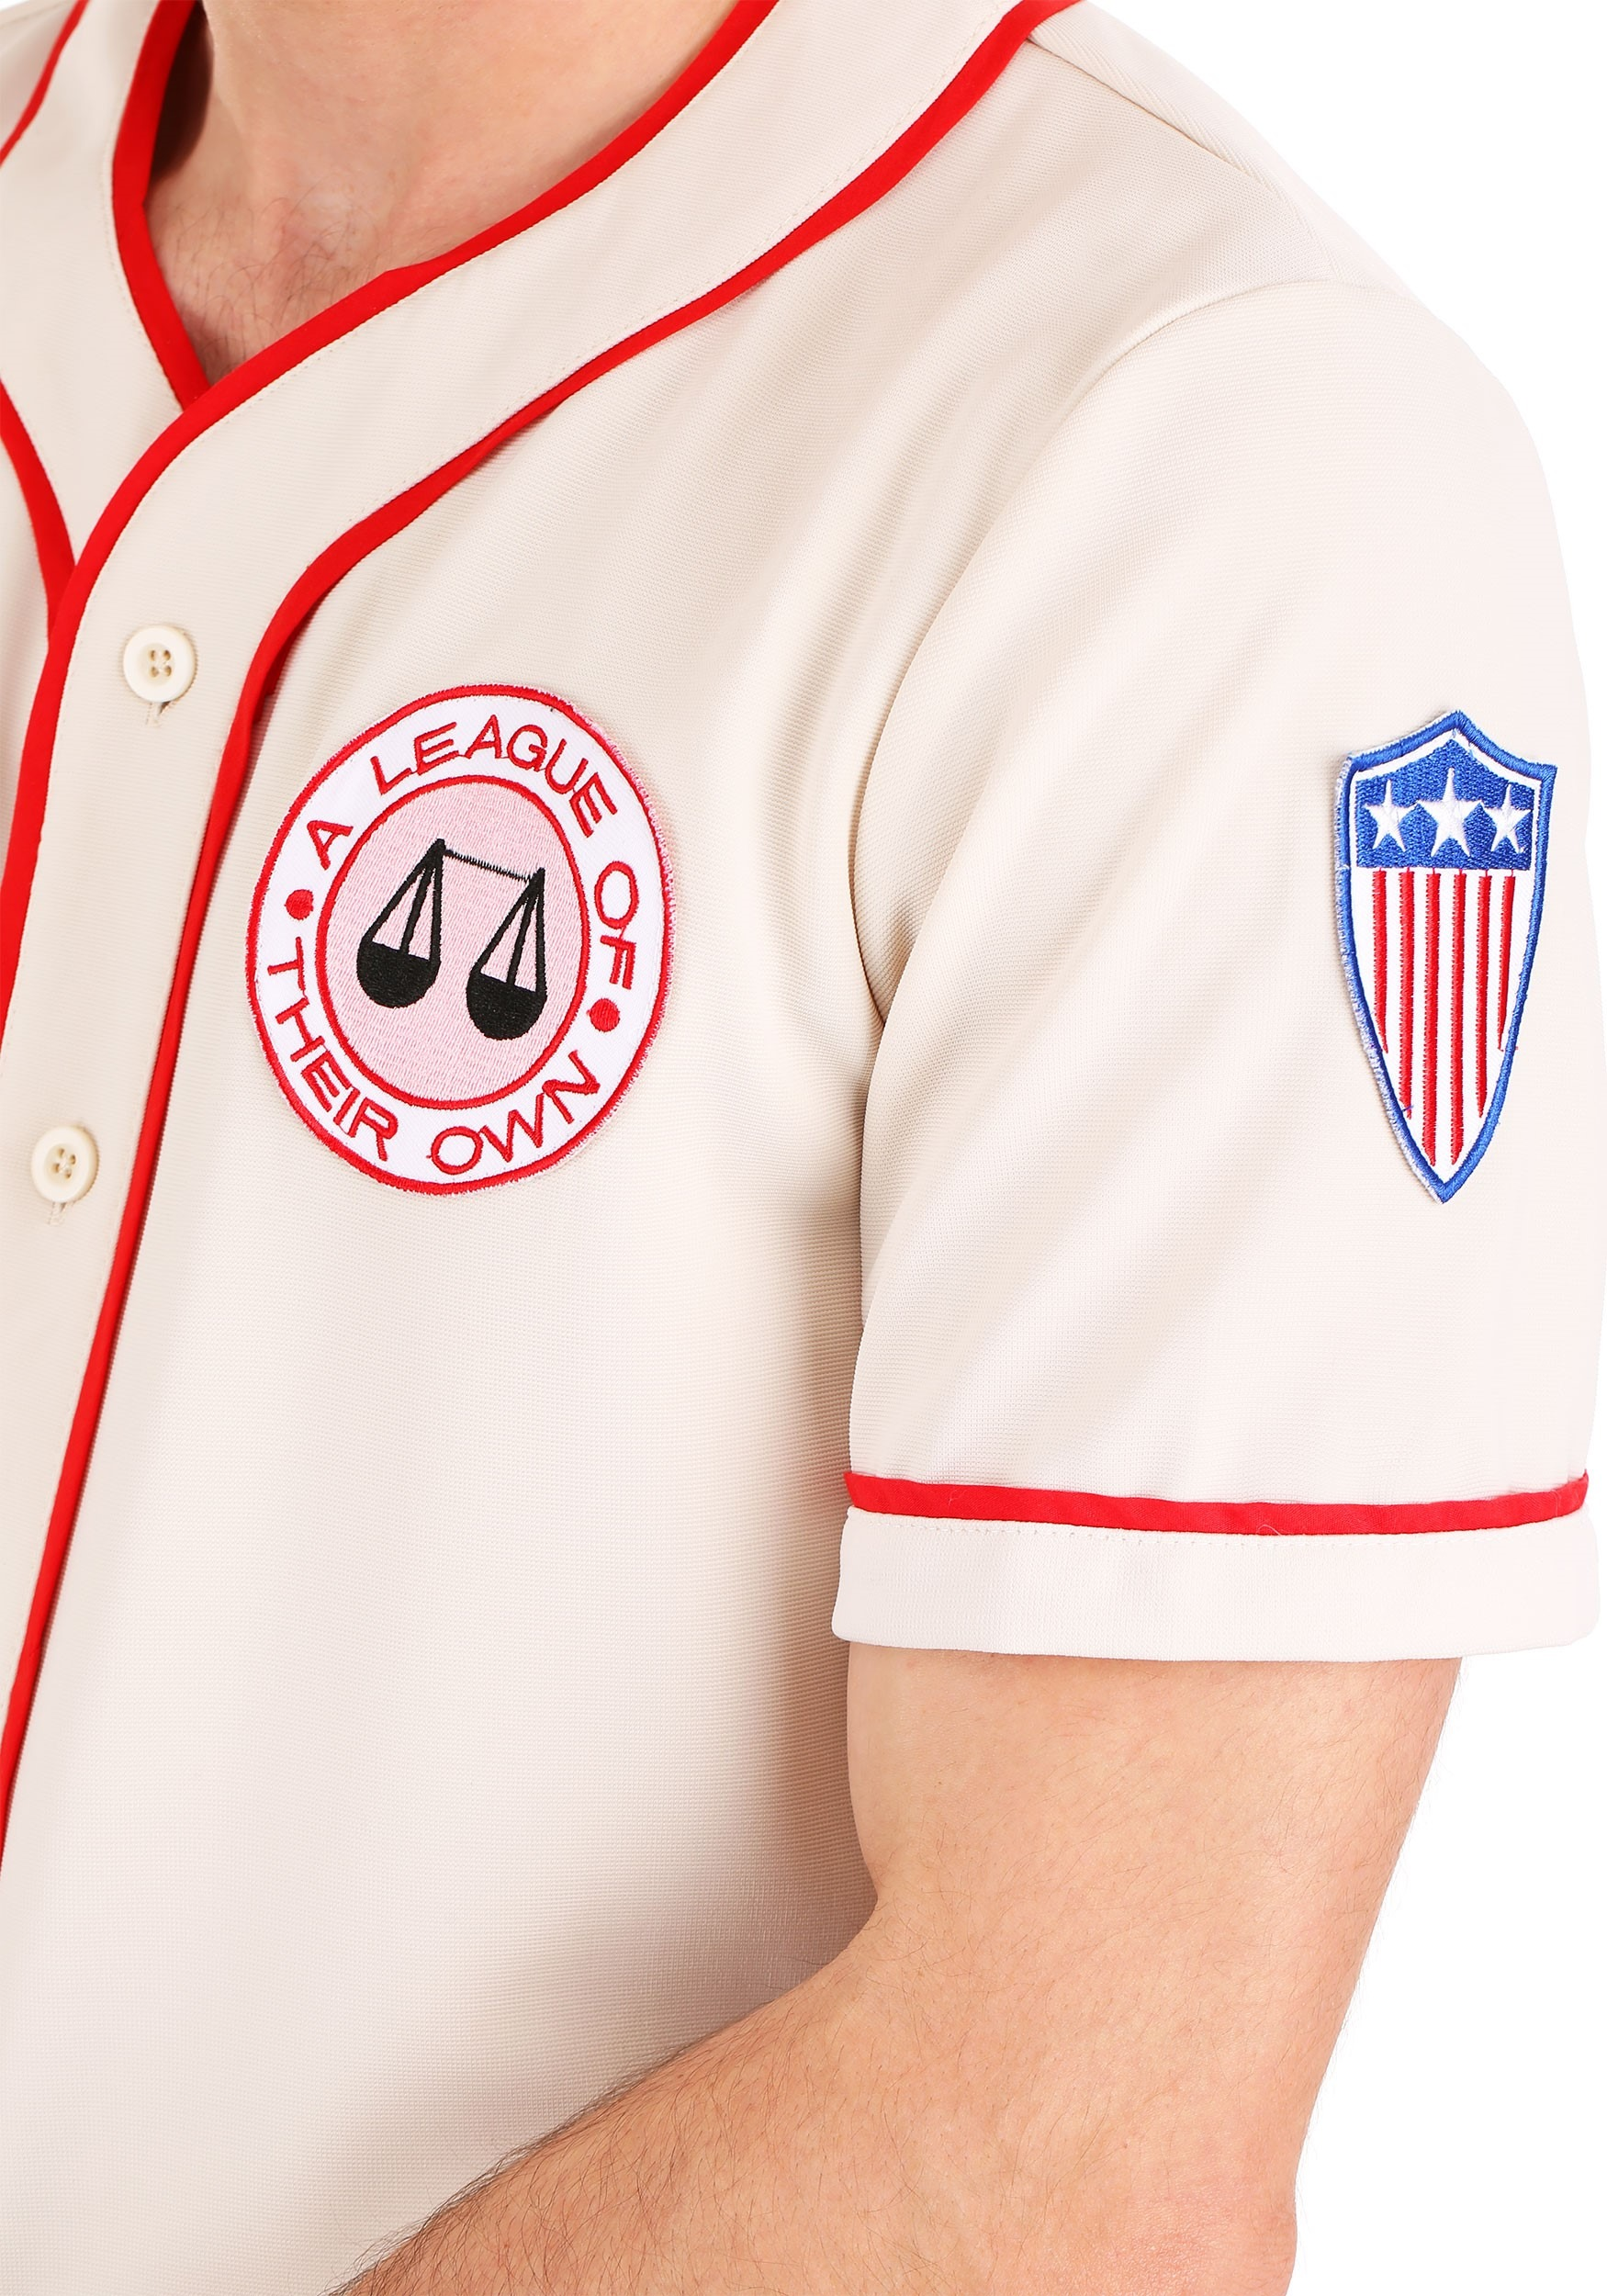 A League Of Their Own Coach Jimmy Men S Costume Exclusive